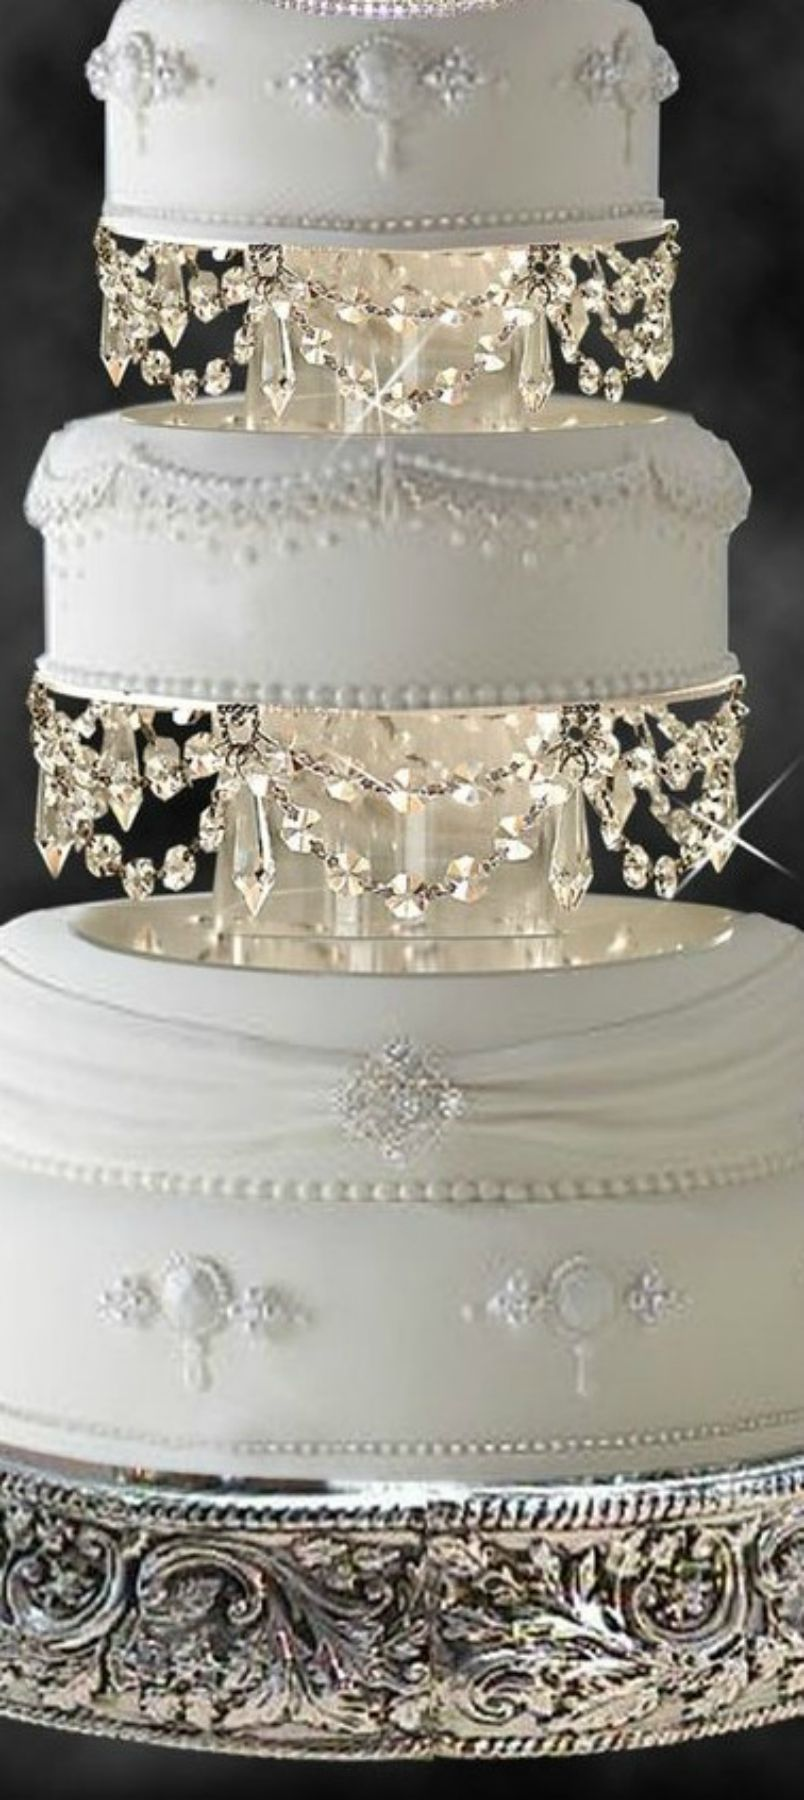 Rosamaria g frangini wedding cakes sophisticated cake with